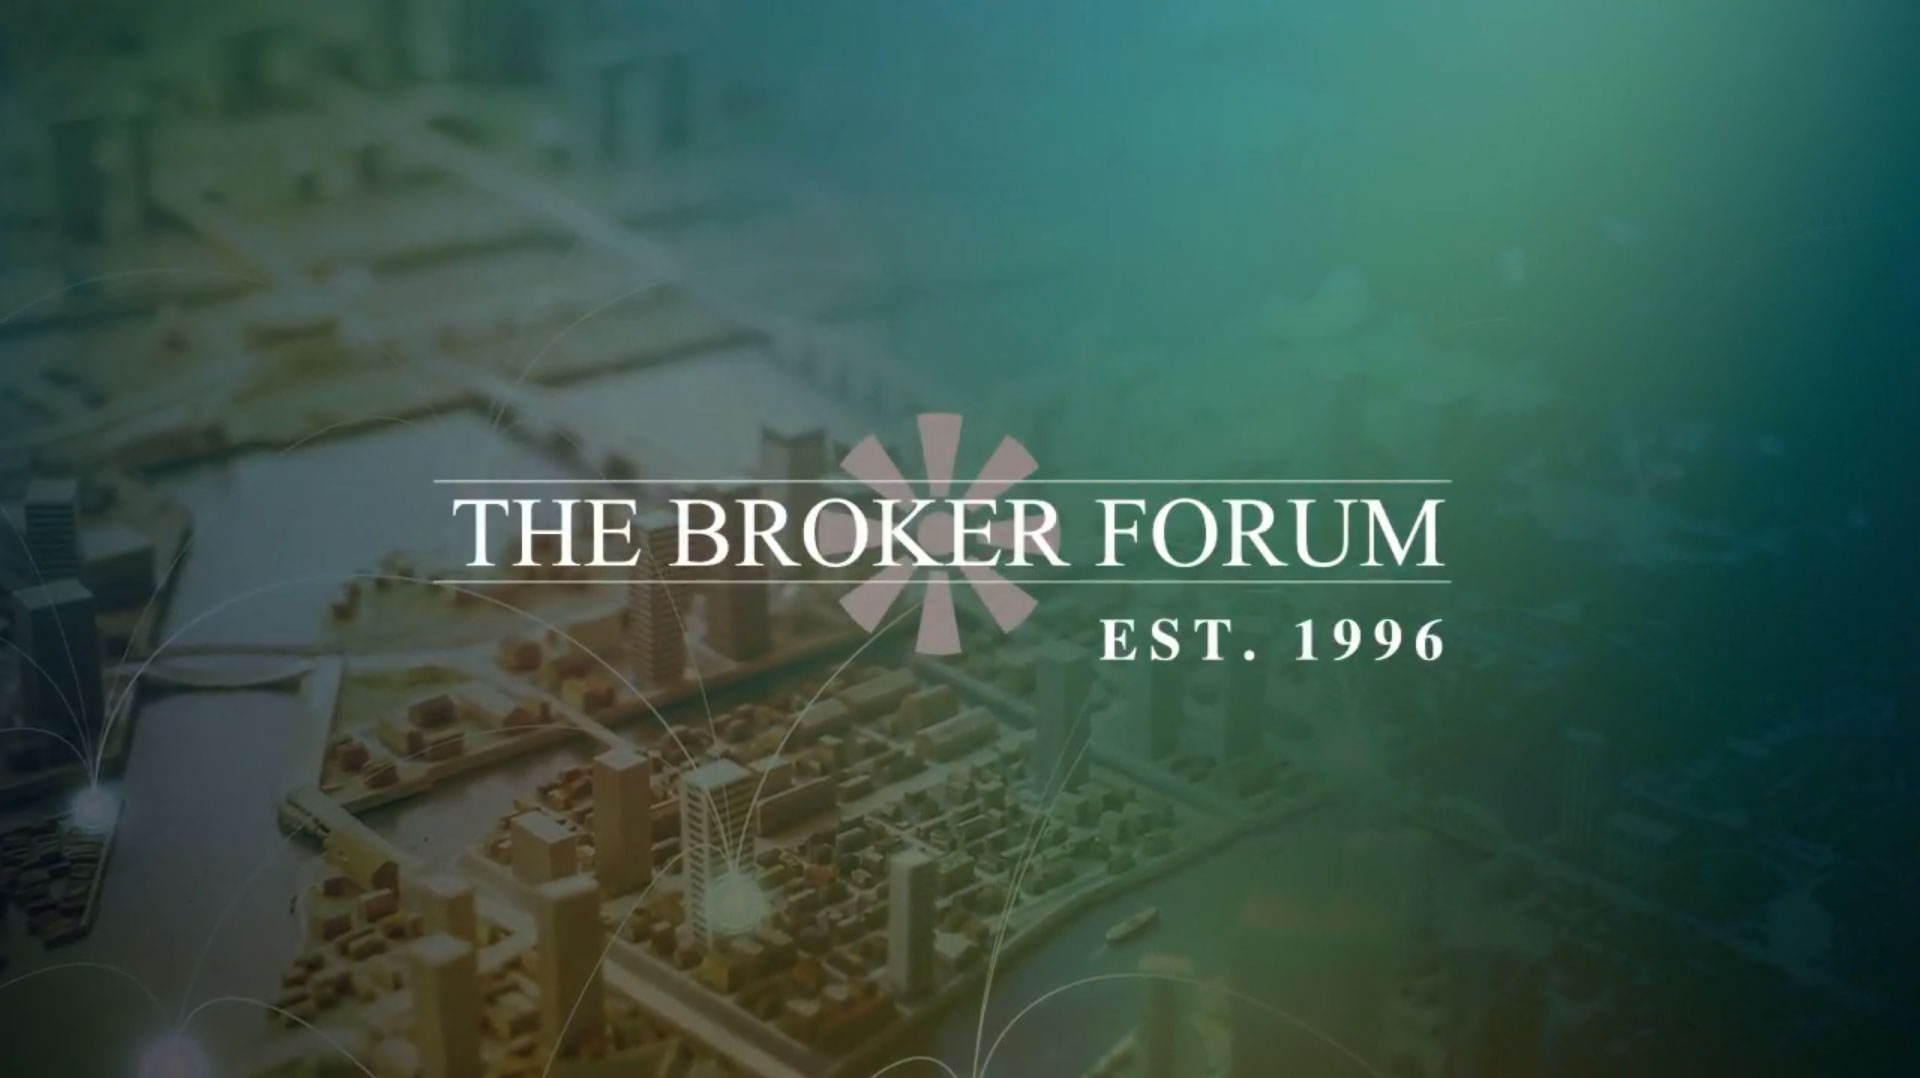 About The Broker Forum